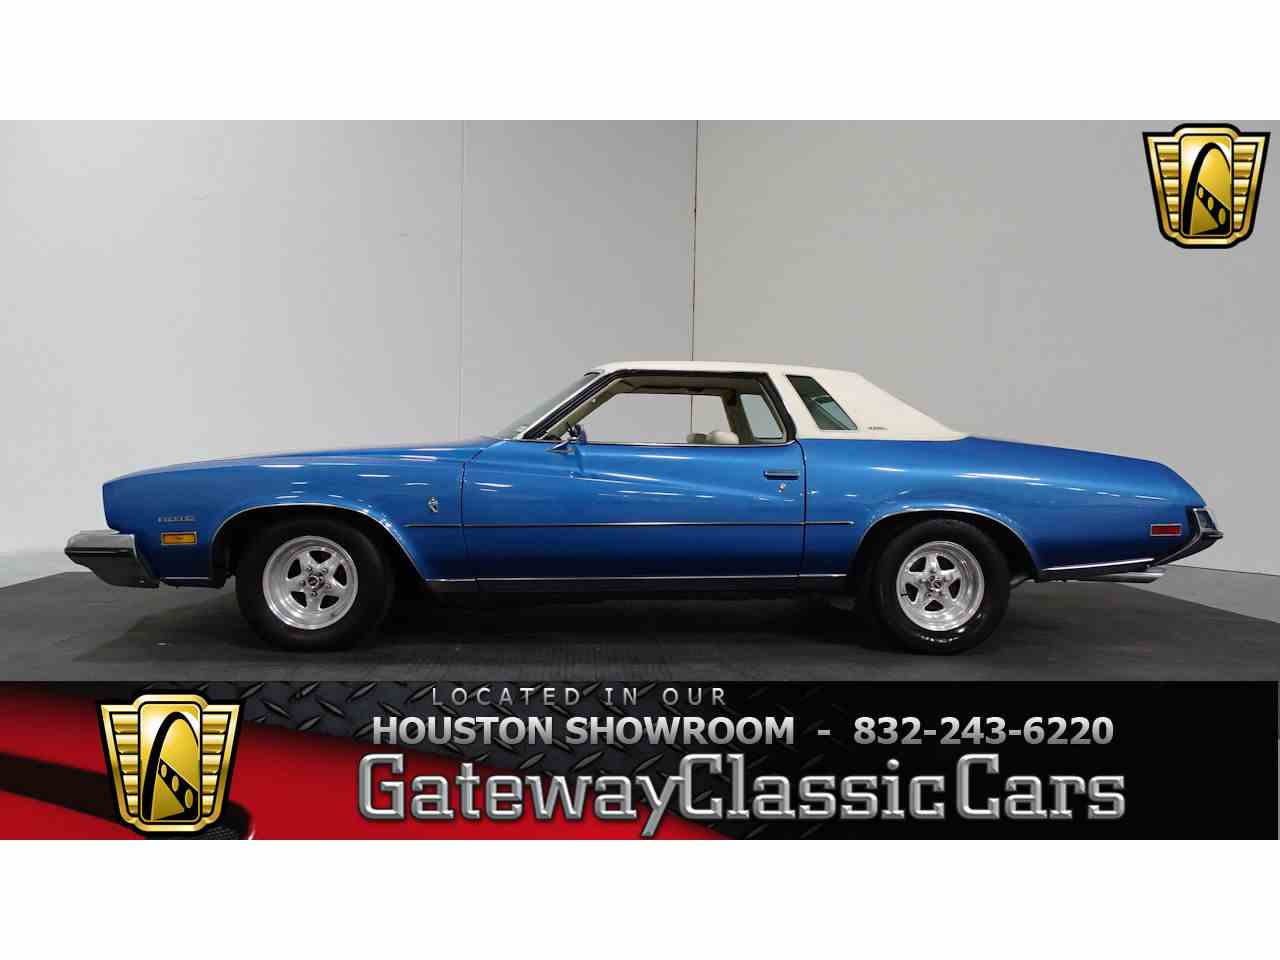 Large Picture of Classic '73 Buick Regal located in Texas - $13,595.00 - LF41